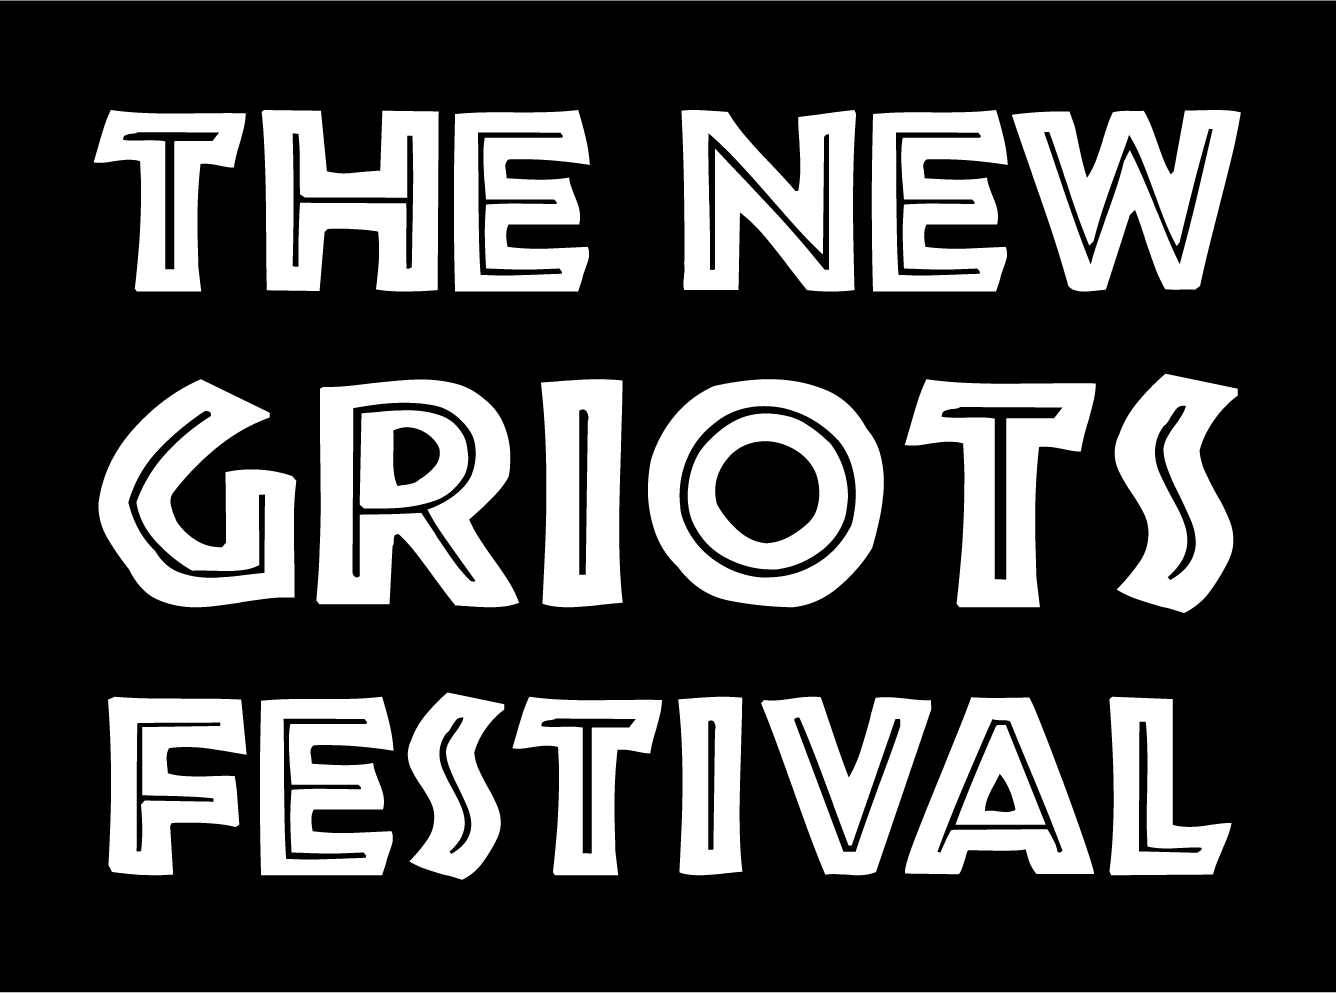 GriotsFestival-Logo_2.png